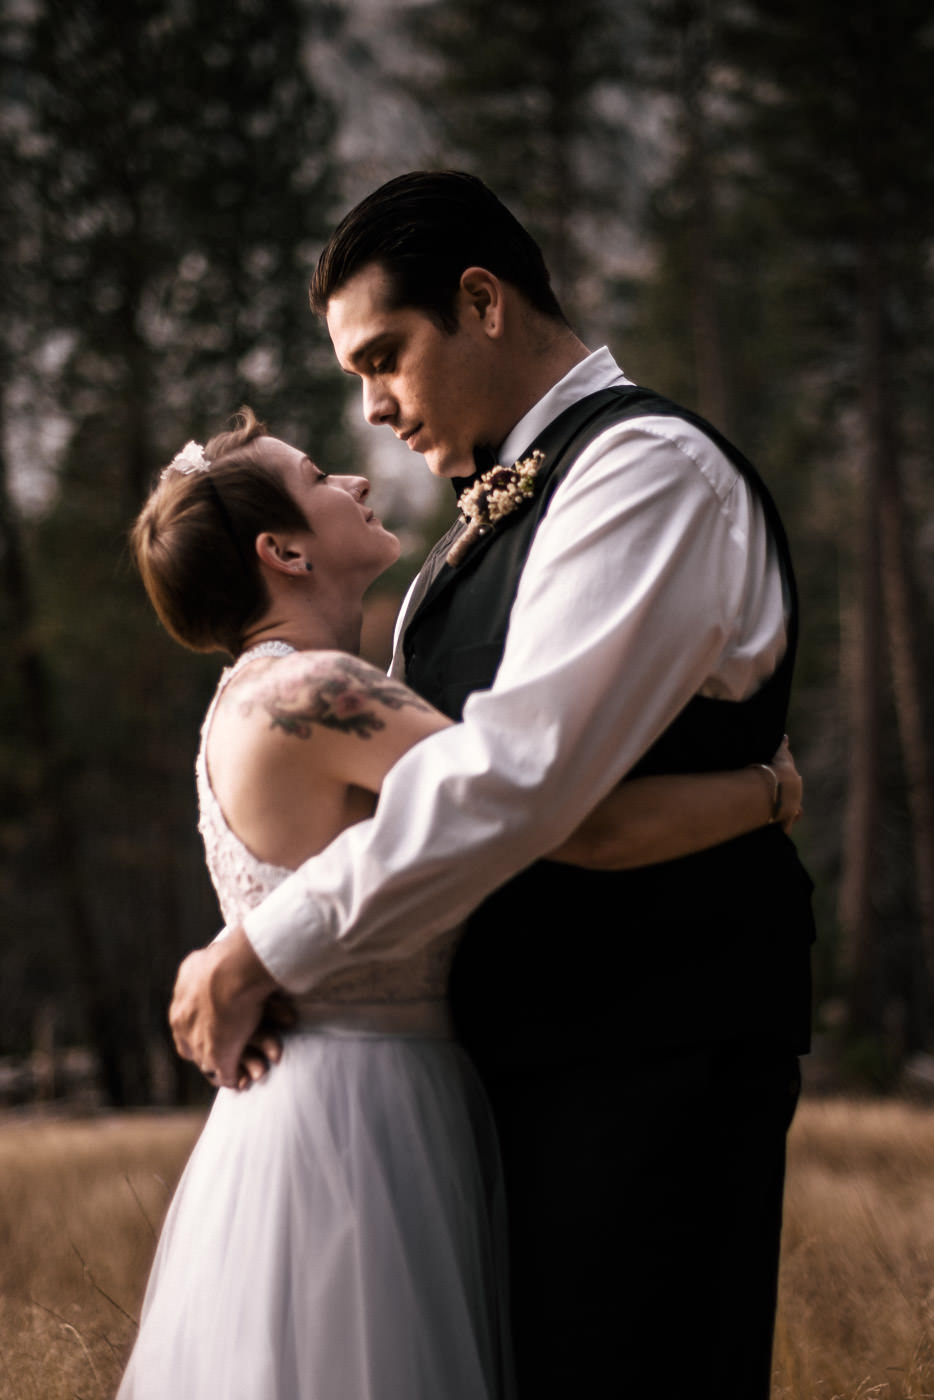 Couple holds each other romantically in a meadow after their elopement ceremony captured by their elopement photographer.